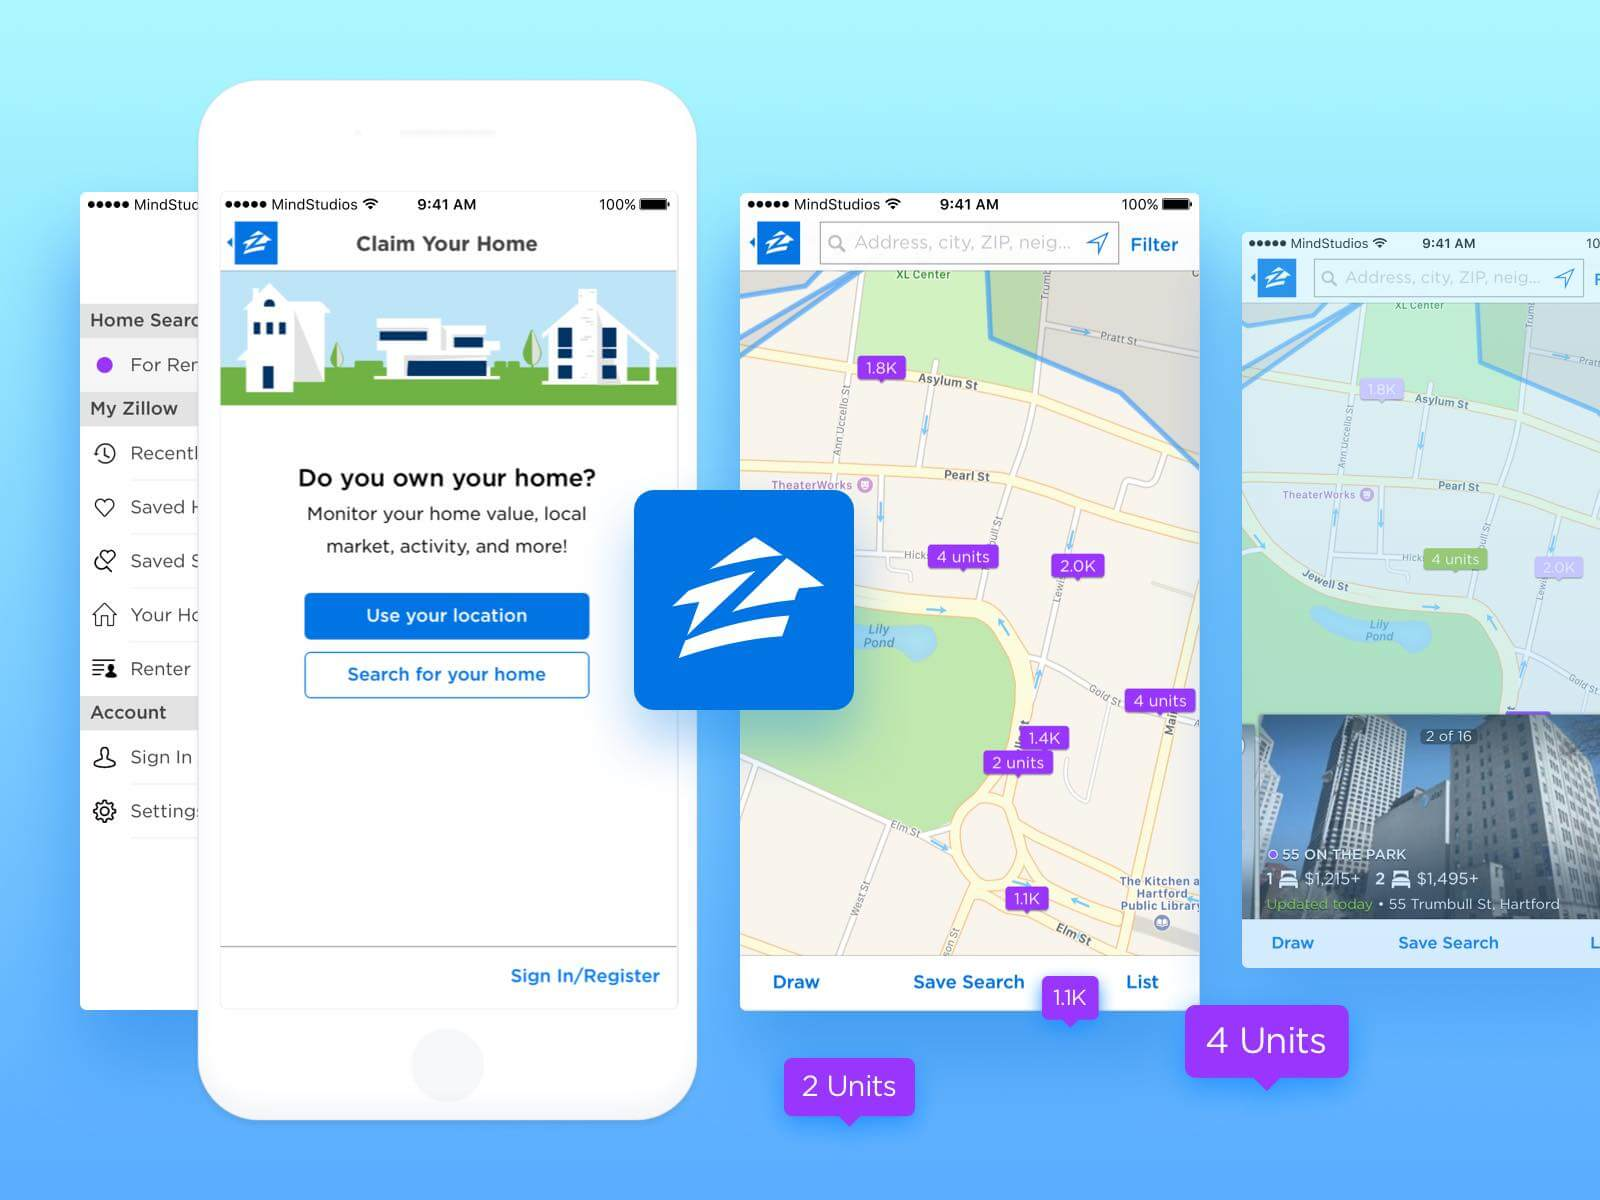 Zillow Maps Home Values on what's my home worth map, zillow homes for rent, zillow street maps, zillow zestimates, zillow earth, zillow badge, zillow find neighborhood, kiro 7 map, zillow address map, property value map, zillow map view, what's my house value map, google earth map, zillow search by map, zillow homes values estimates, zillow real estate, home depot map, real map, zillow maps neighborhood, zillow sold homes,